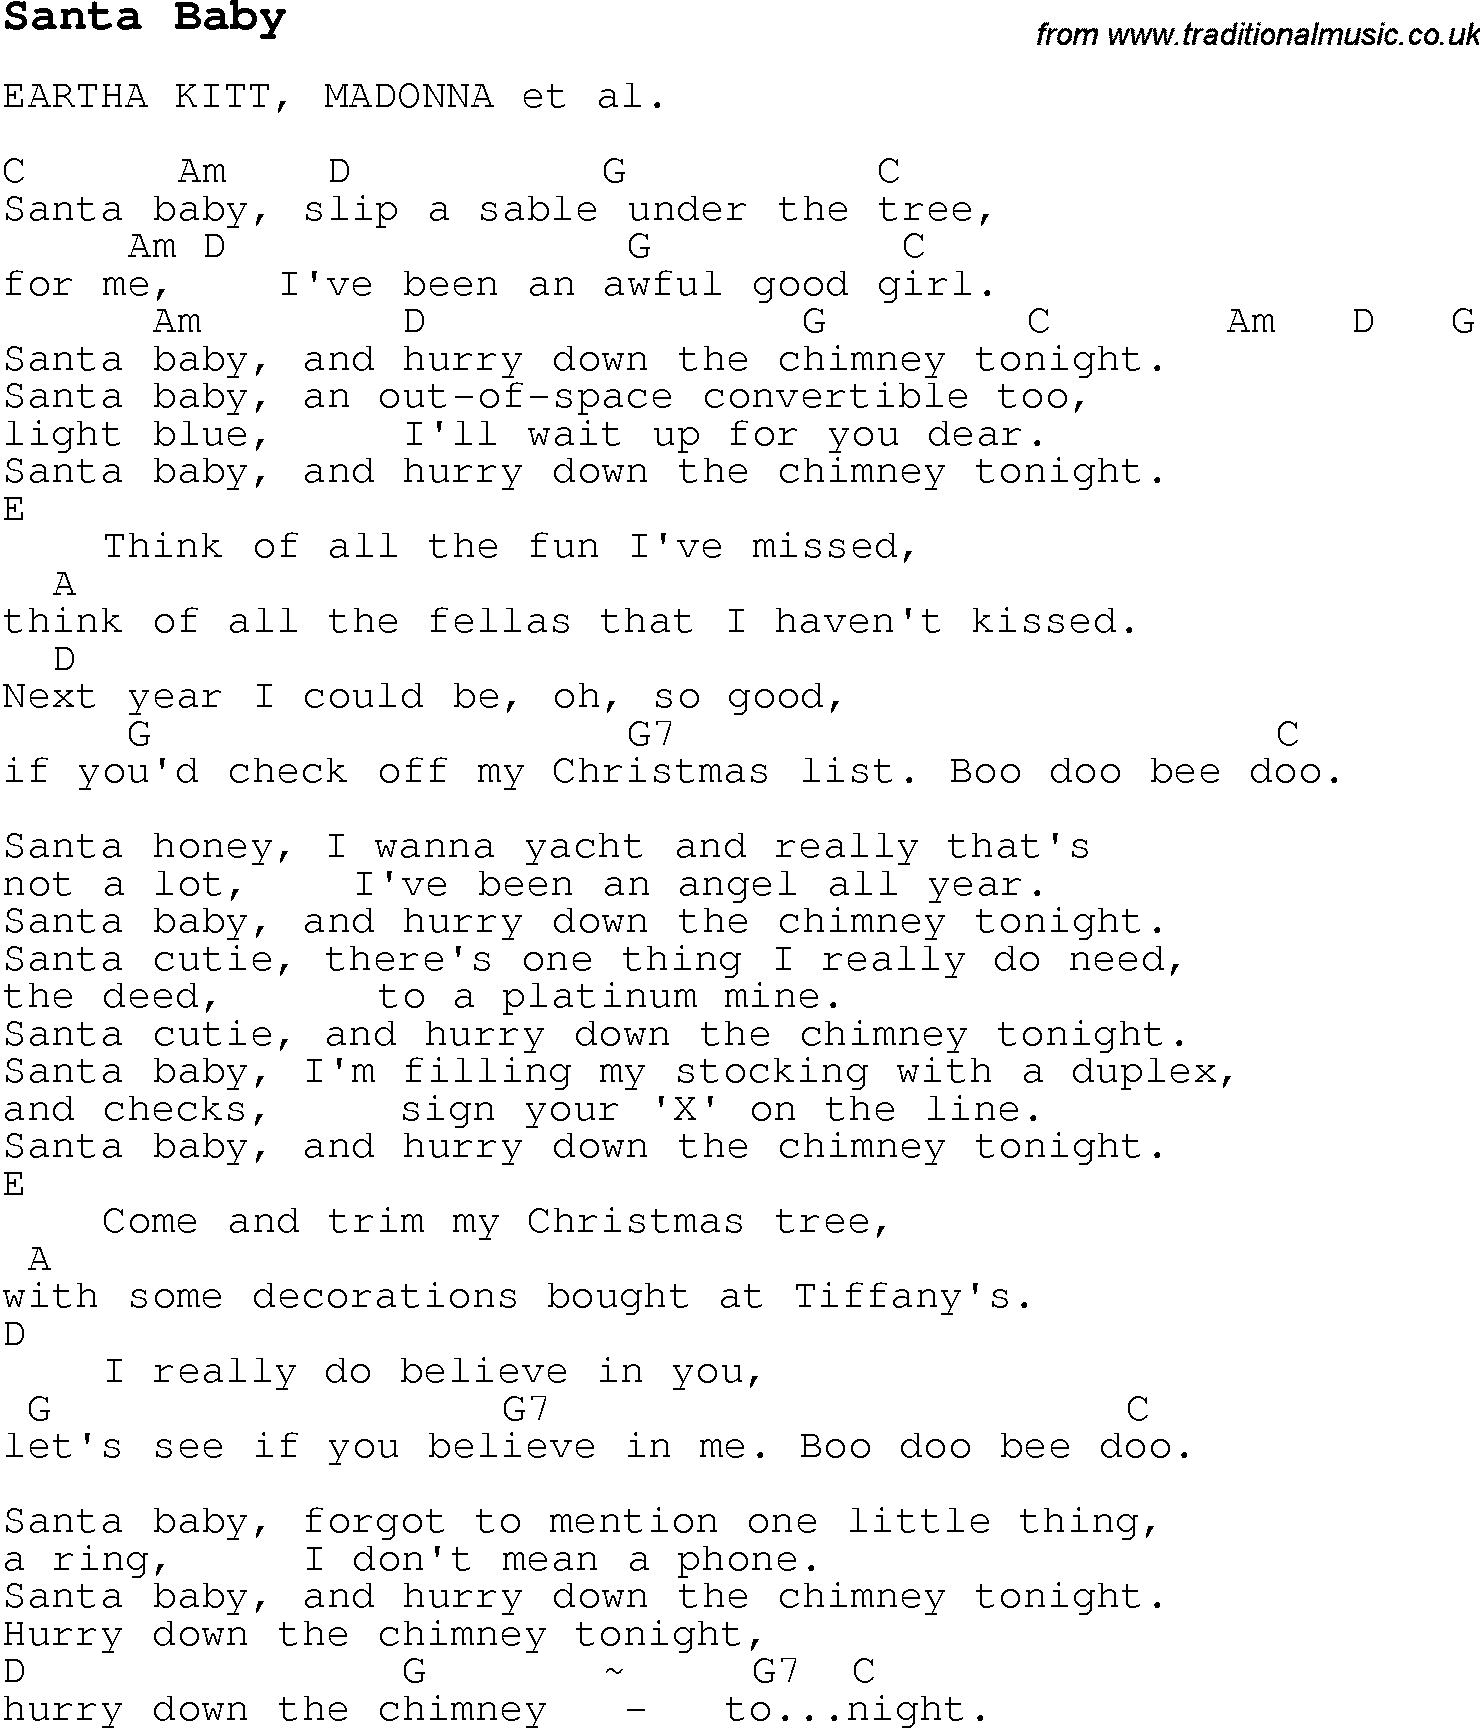 Christmas Songs and Carols lyrics with chords for guitar banjo for Santa Baby